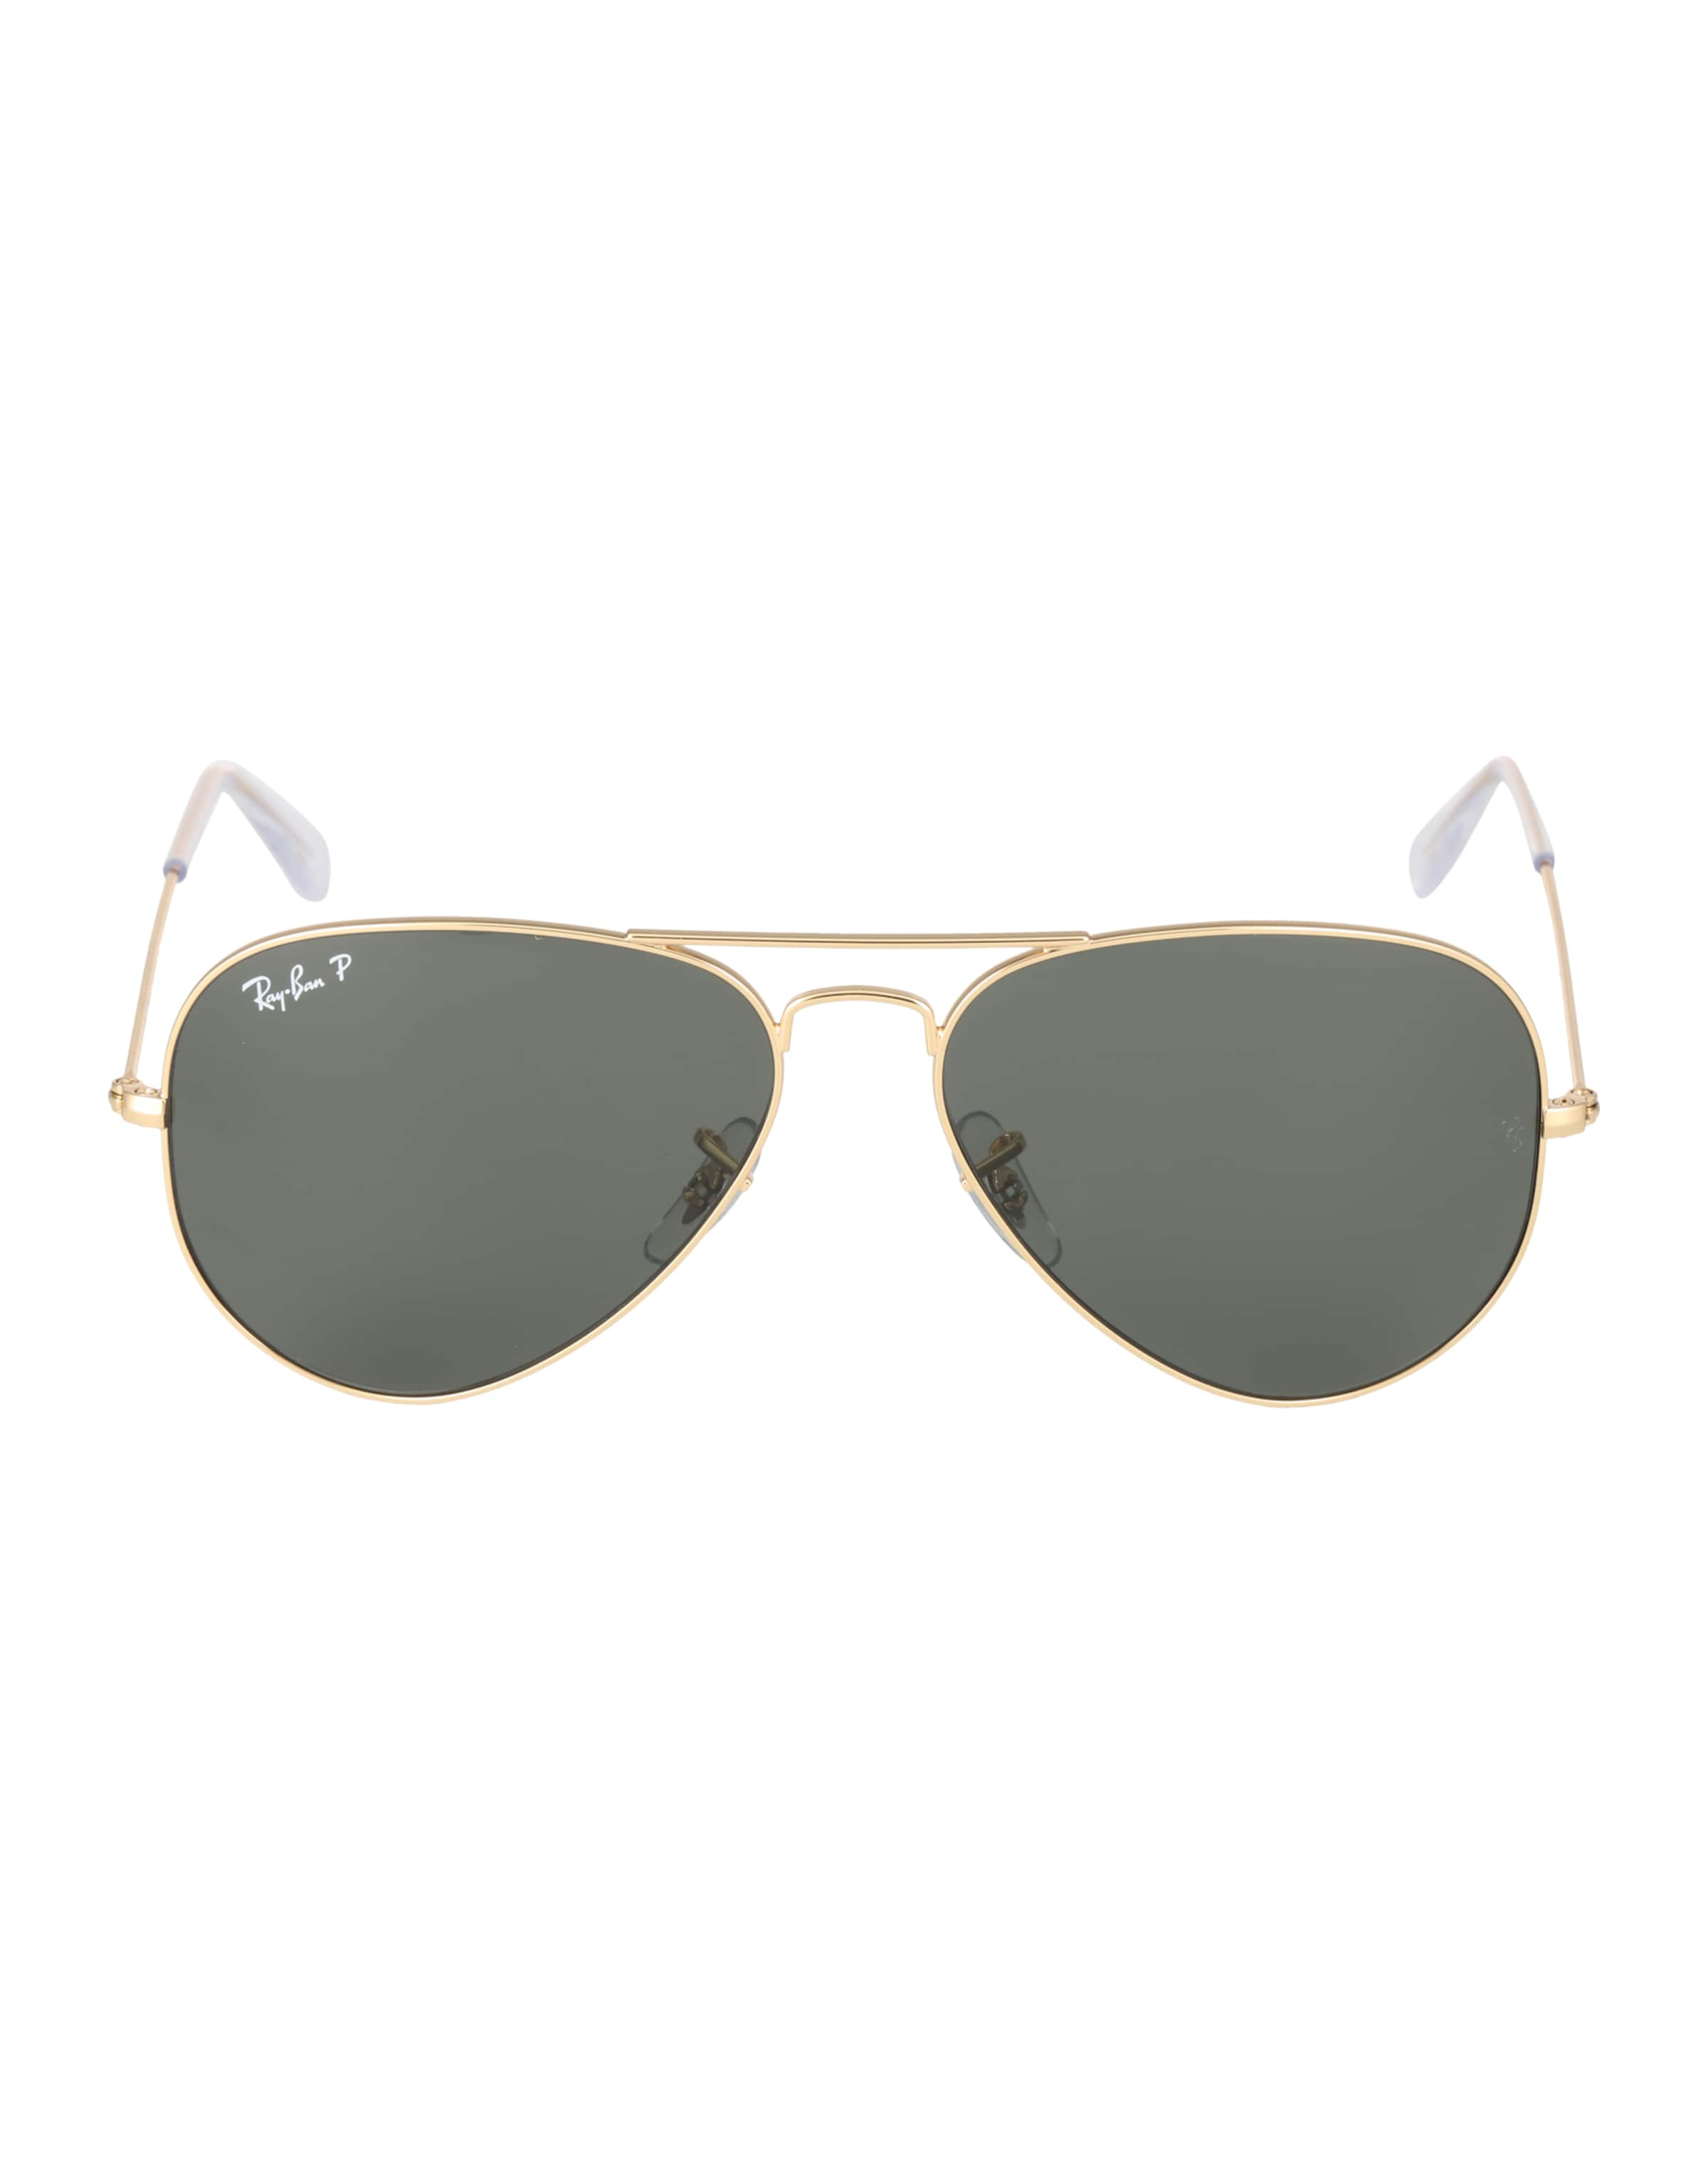 Piloten GoldGrün 'aviator' Ray ban In sonnenbrille 29YHIWED